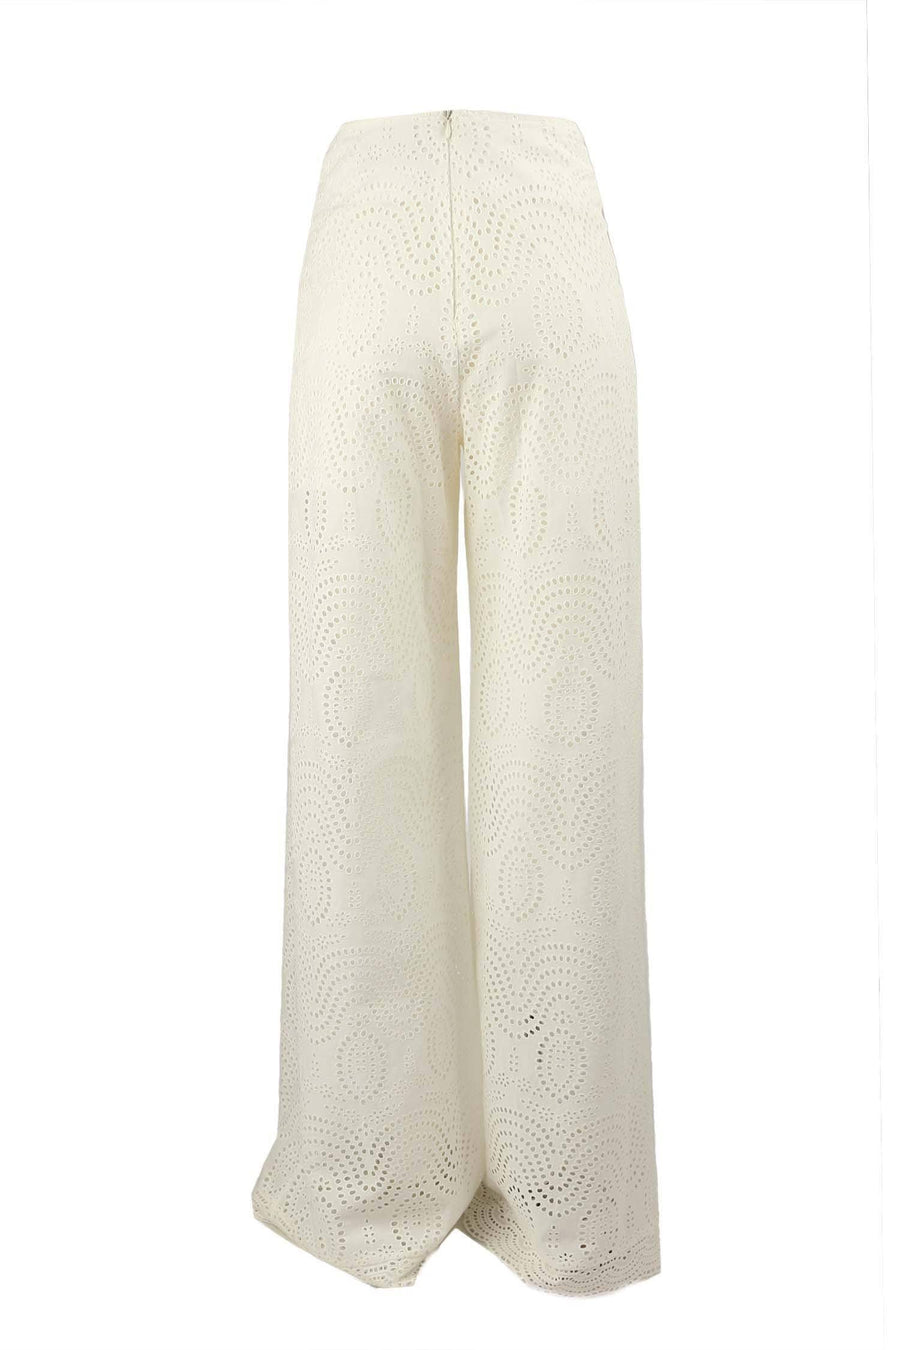 Lola High Waist Pleats Pants | FINAL SALE